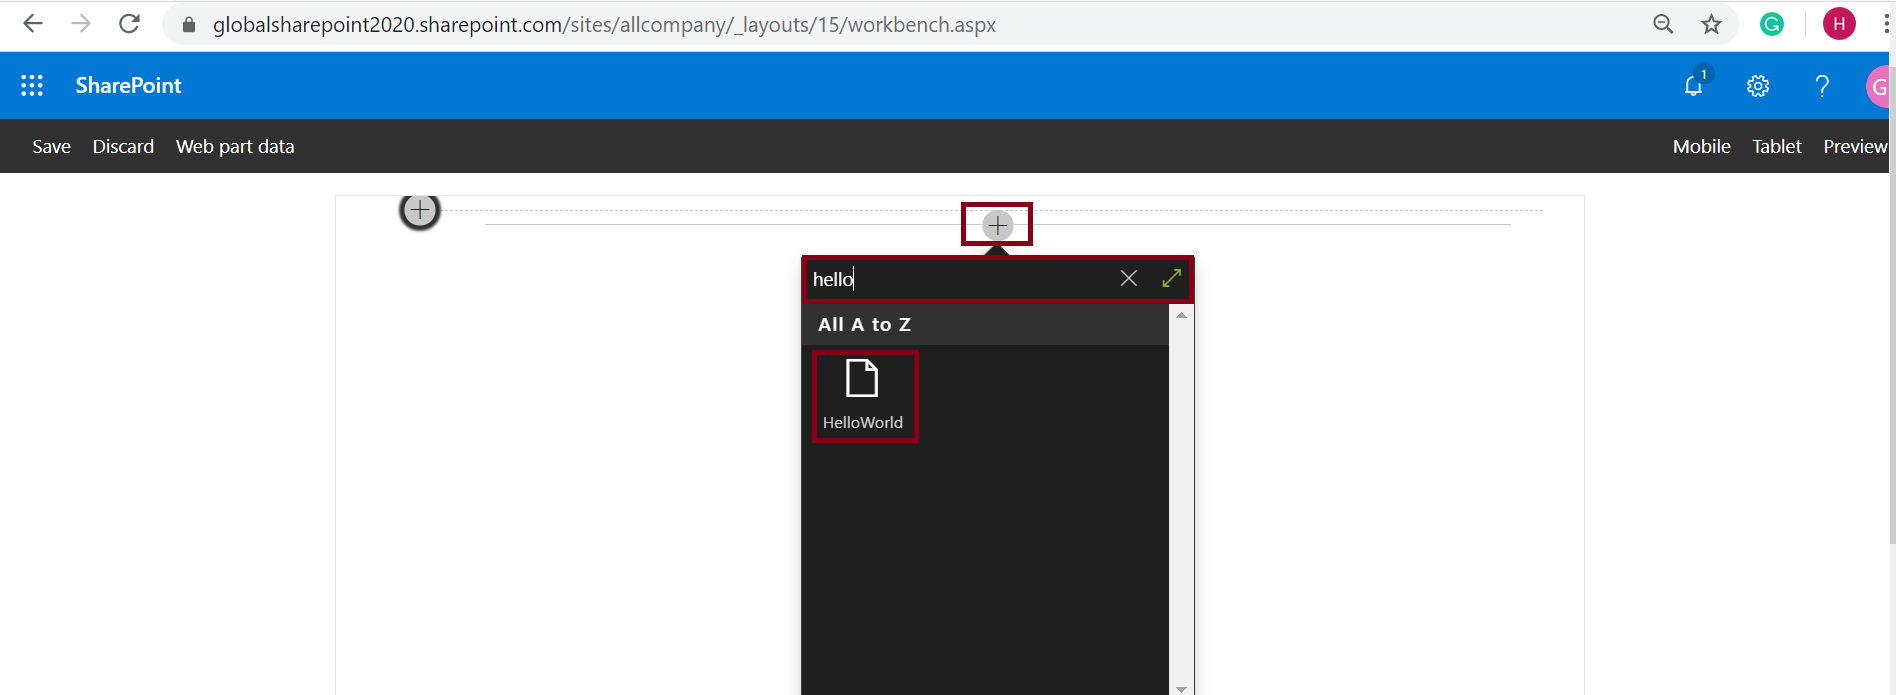 Add SPFx Web Part from SharePoint workbench.aspx